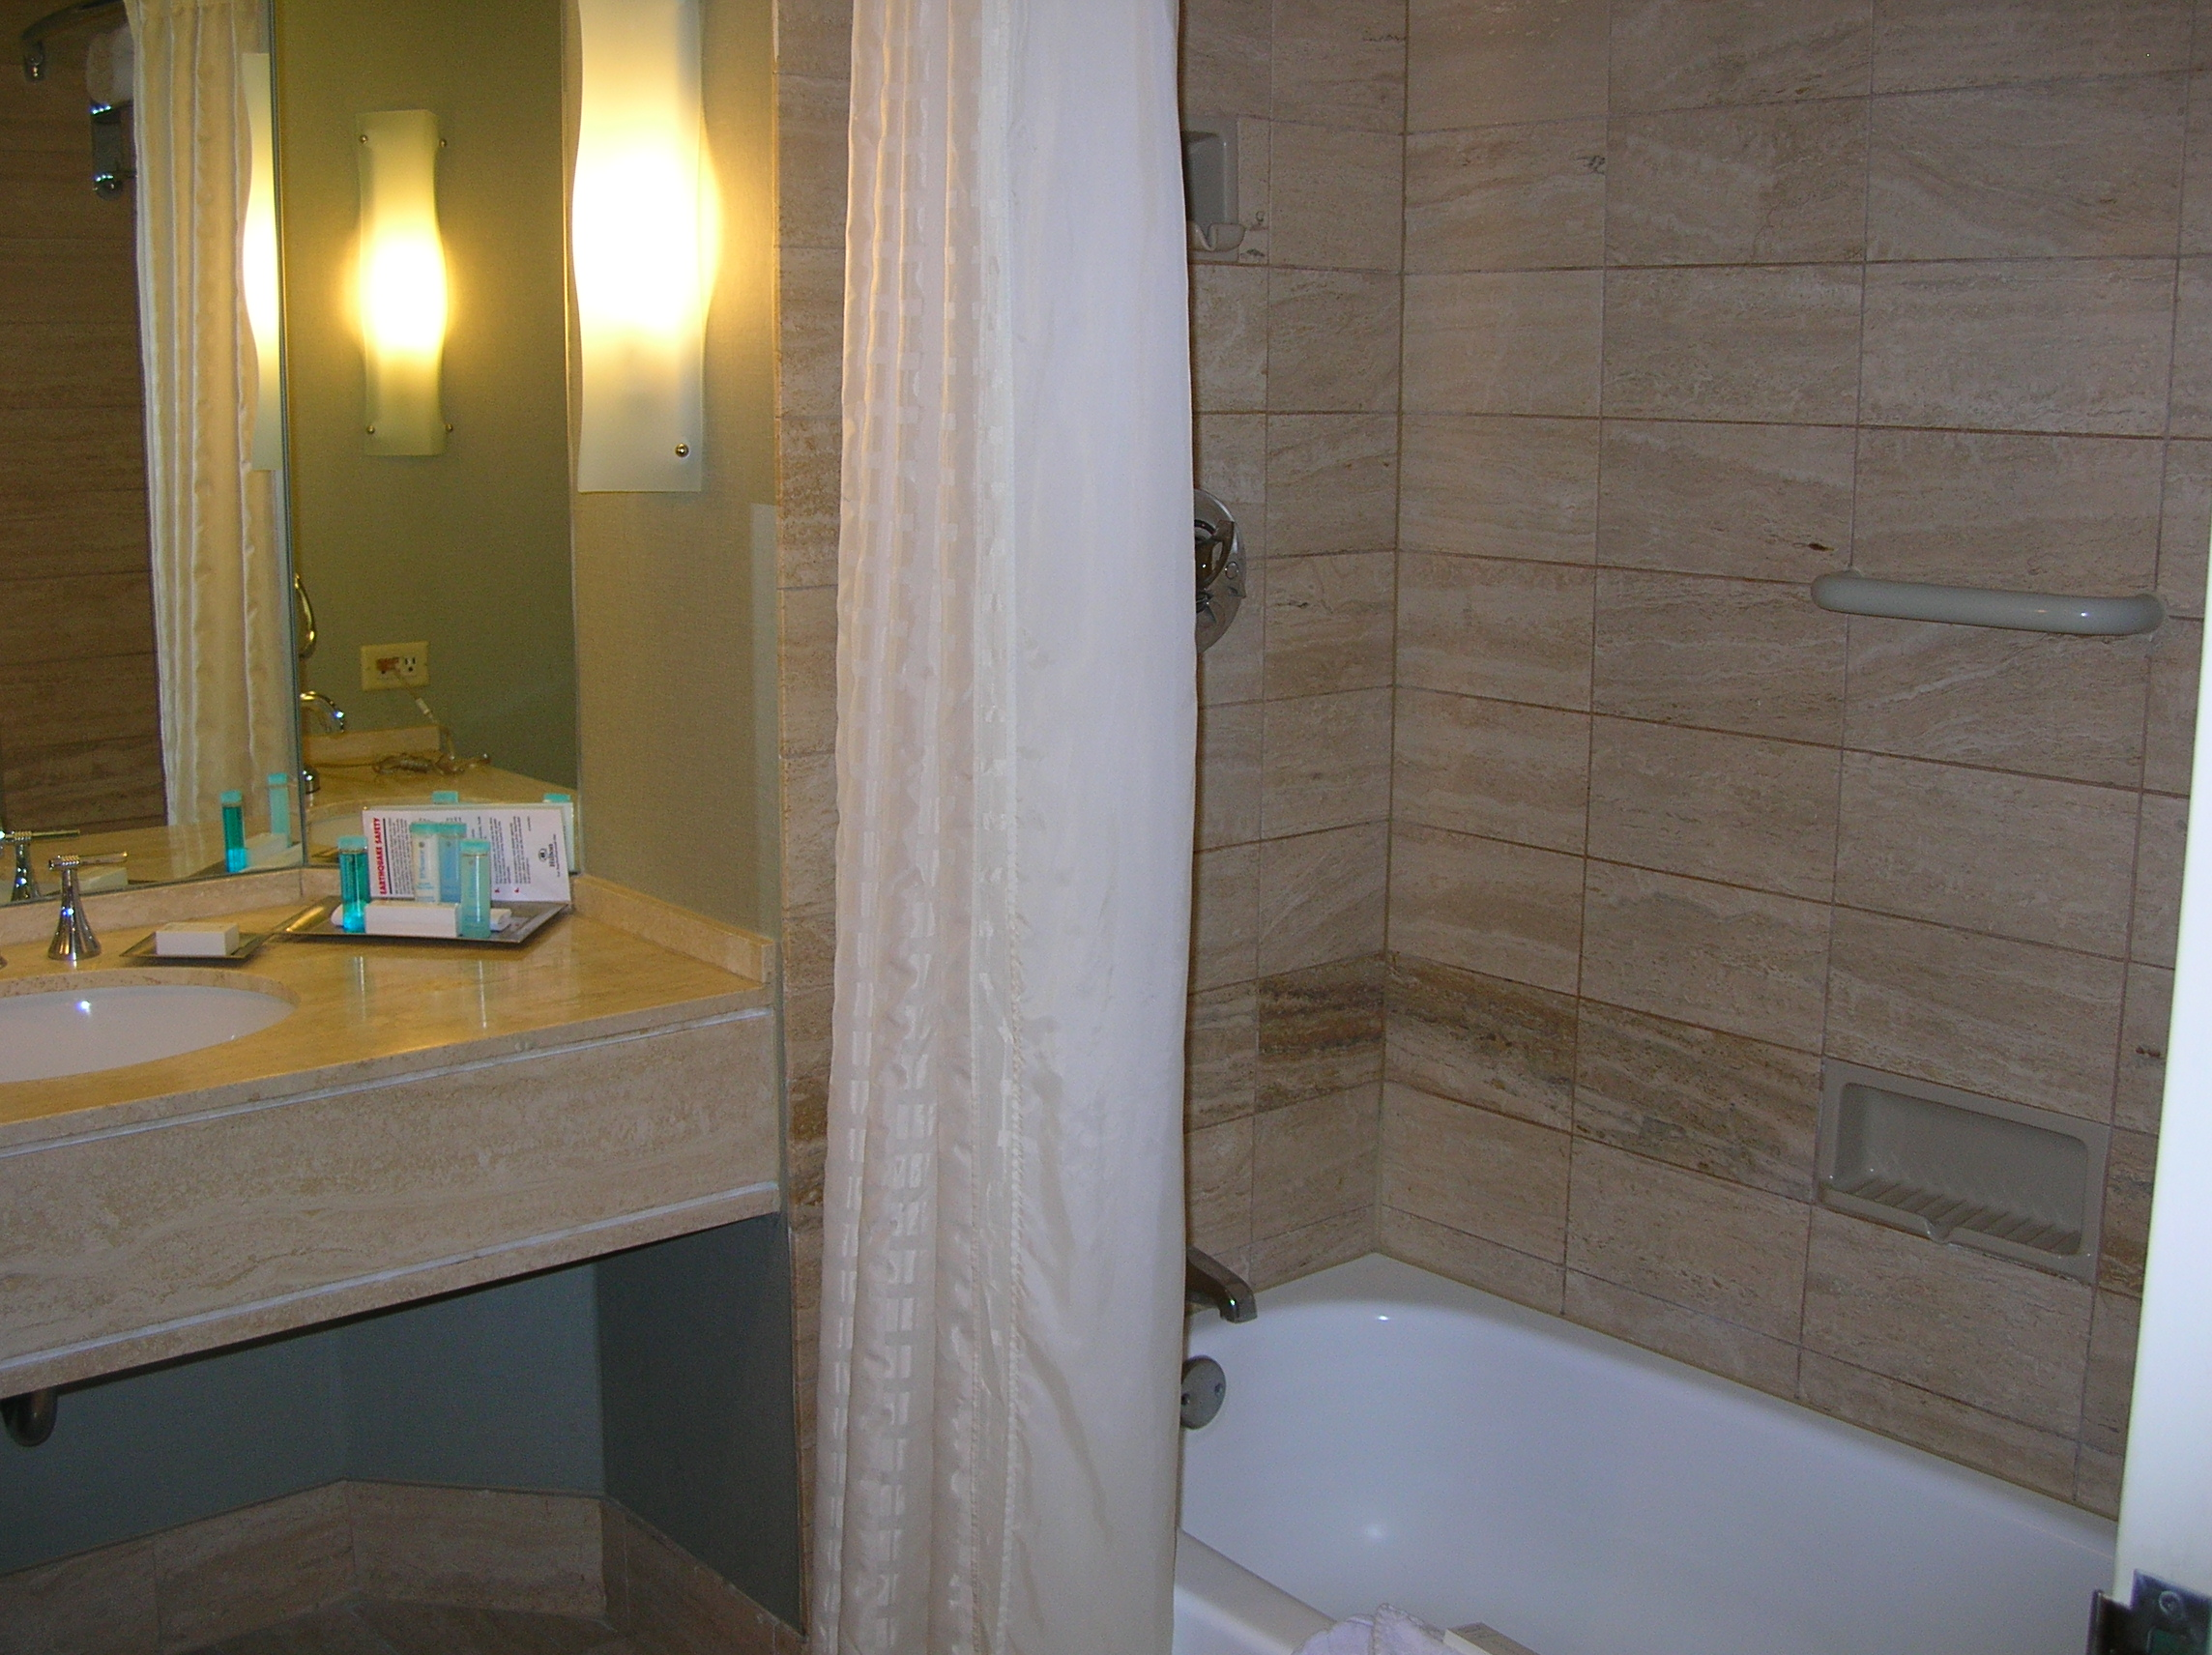 Bathroom City : Description Hilton LA-Universal City double room bathroom.JPG